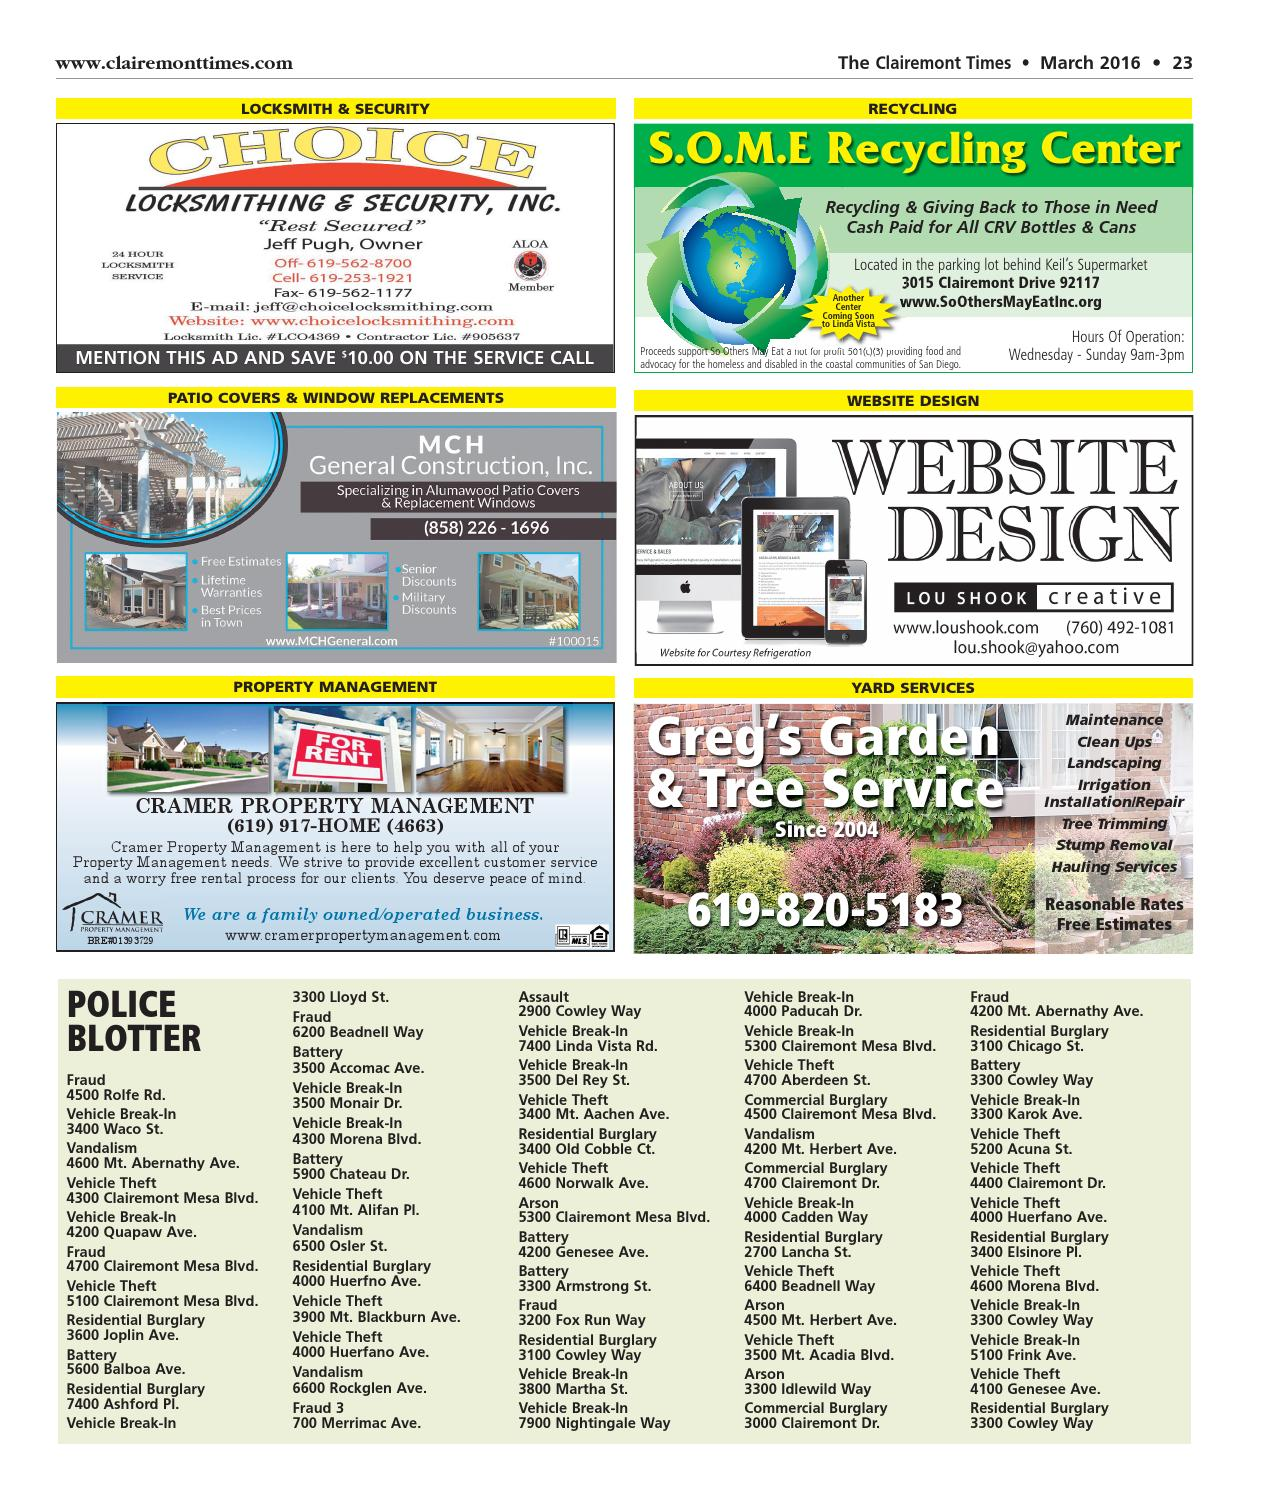 Clairemont Times March 2016 by Clairemont Times - issuu